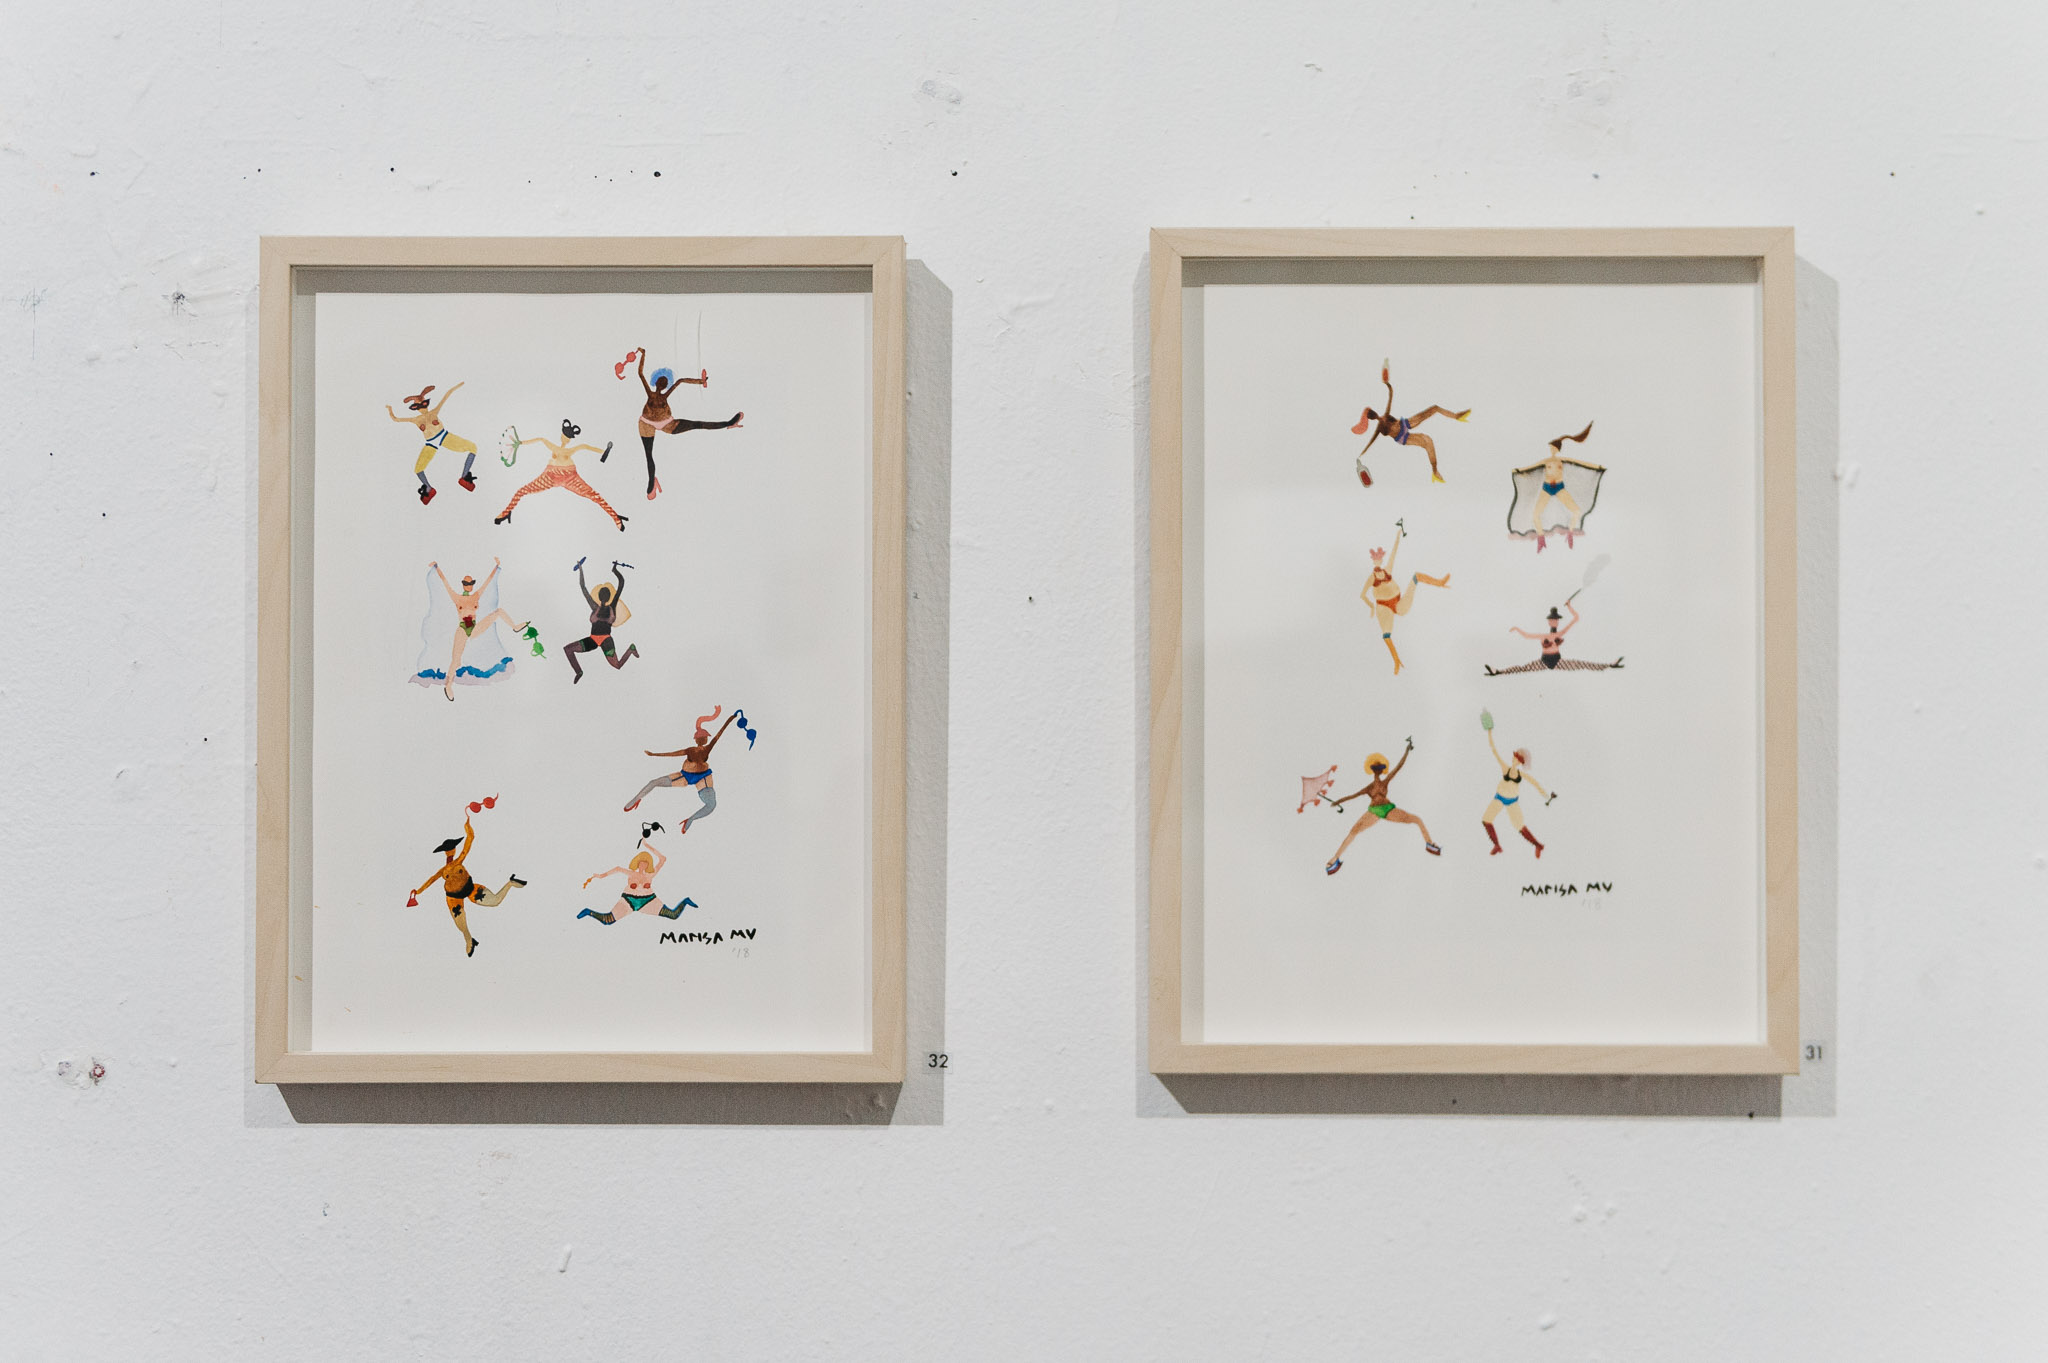 Marisa Mu paintings with Simone Taylor photographs - Epitome of HER exhibition